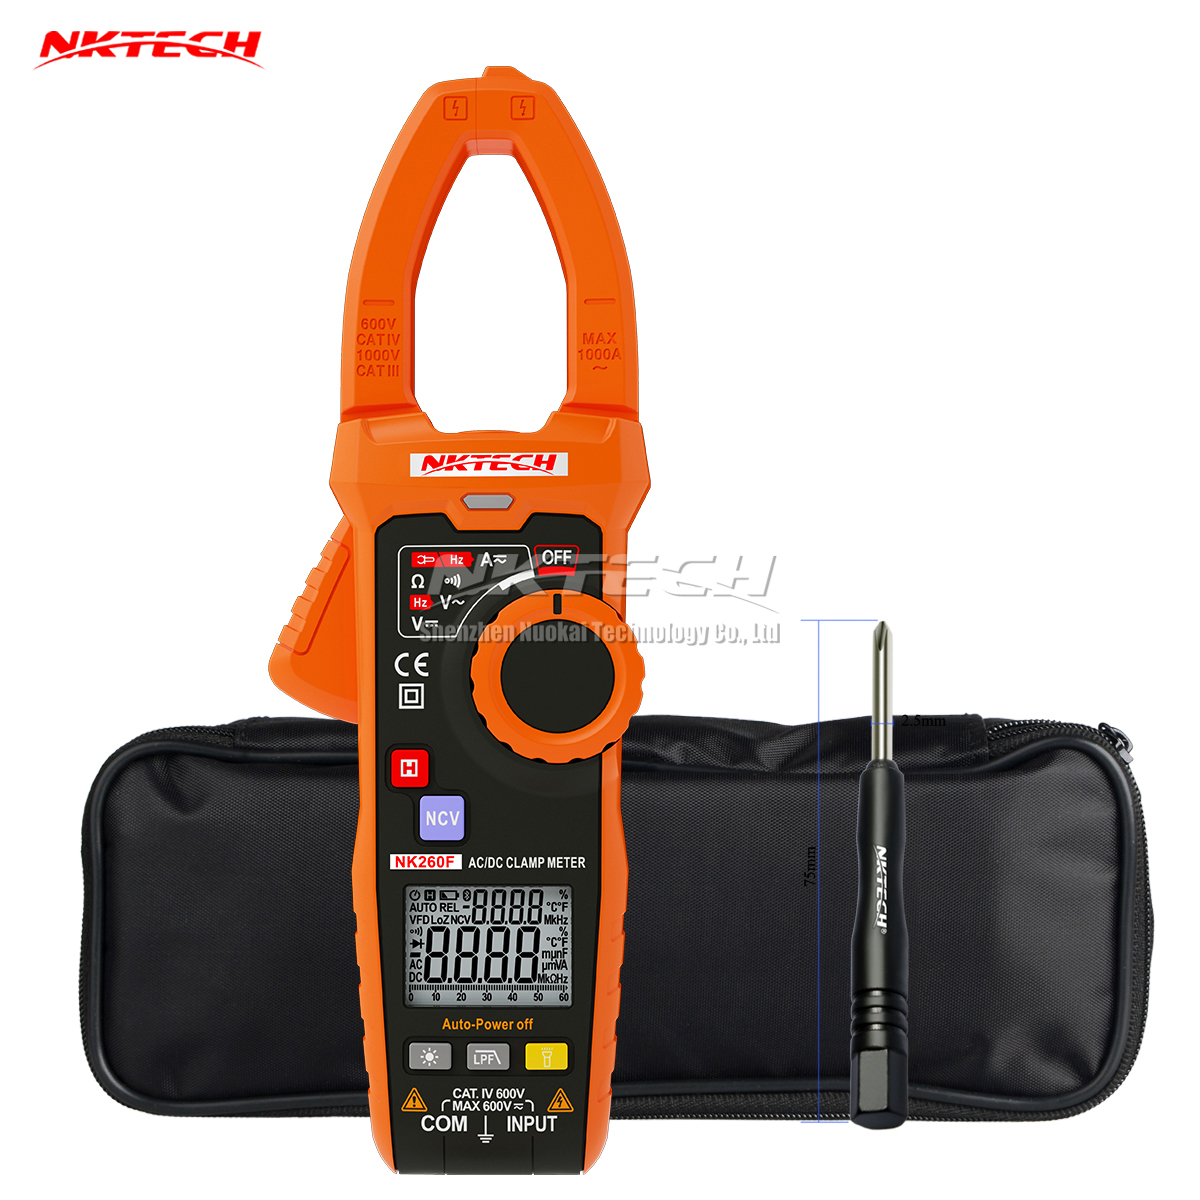 NKTECH NK260F VDF Smart Digital Clamp Meter LPF AC/DC V DCA Frequency Capacitance NCV Automatic Dual Display V/Ohm/A Auto Scan fashlight nktech super bright nk 9t6 9x